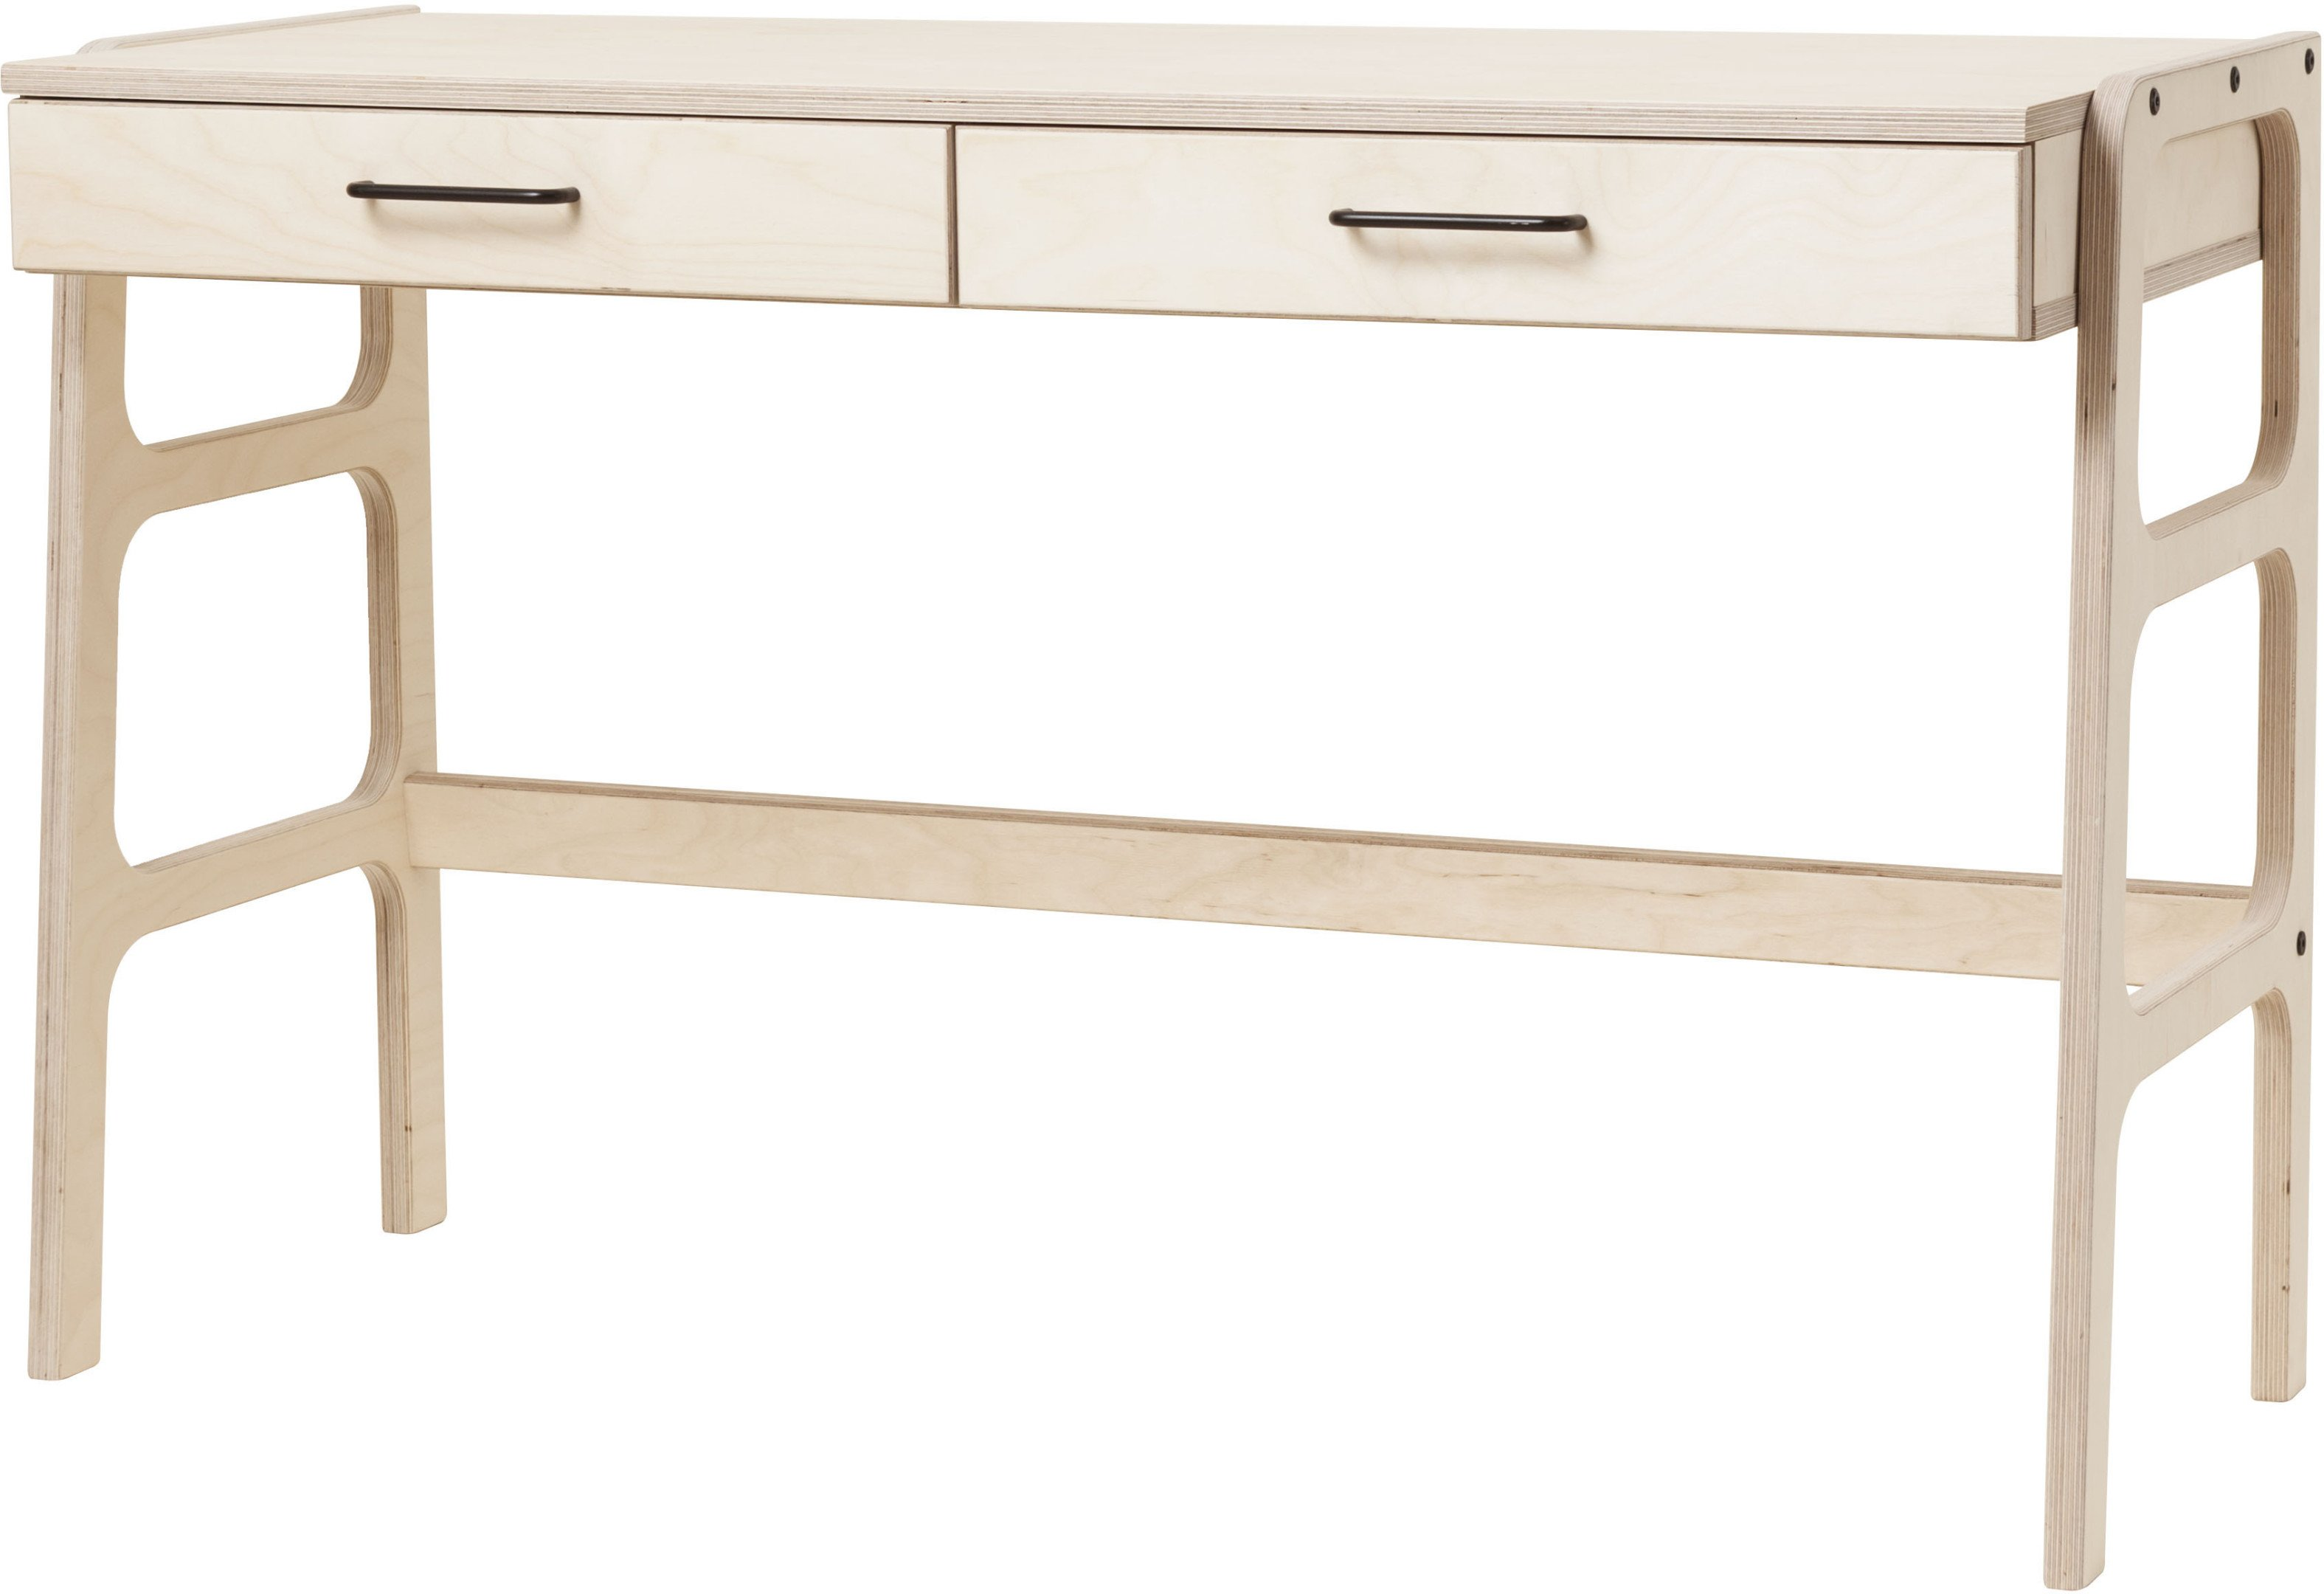 Frisk Desk with Drawers Light Brown, Plywood Project